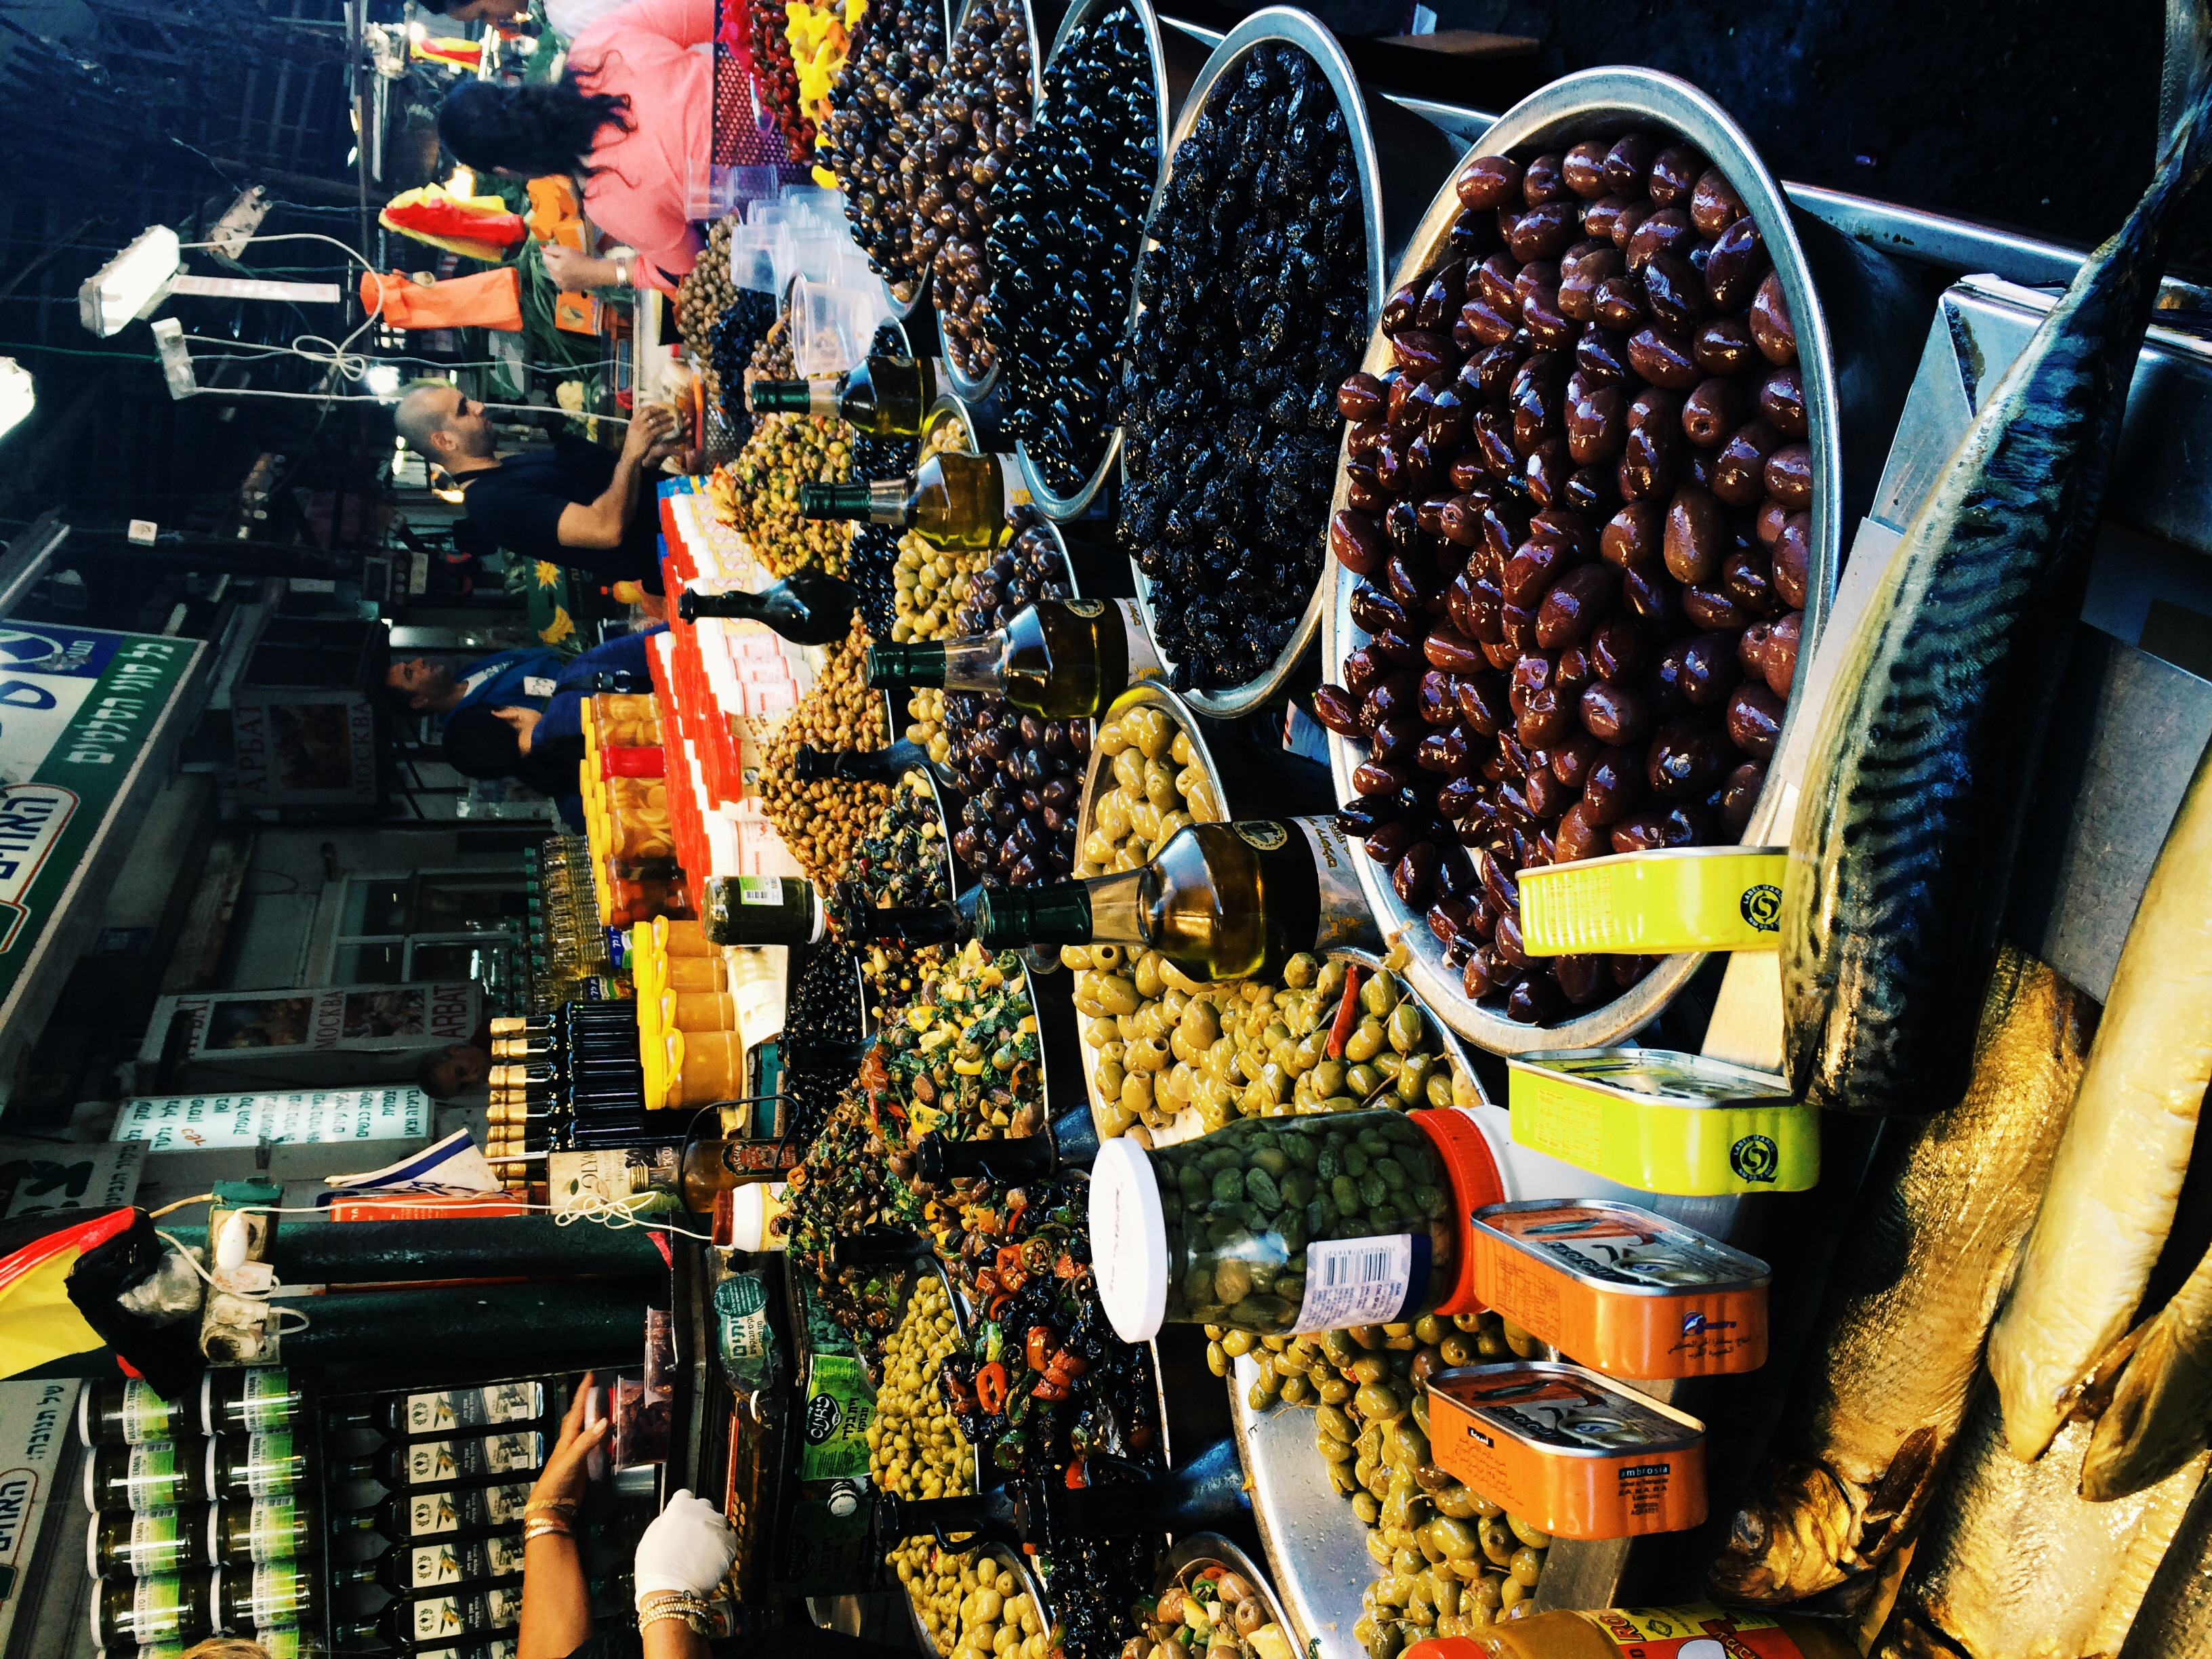 I have never seen so many different types of cured olives! At Carmel Market